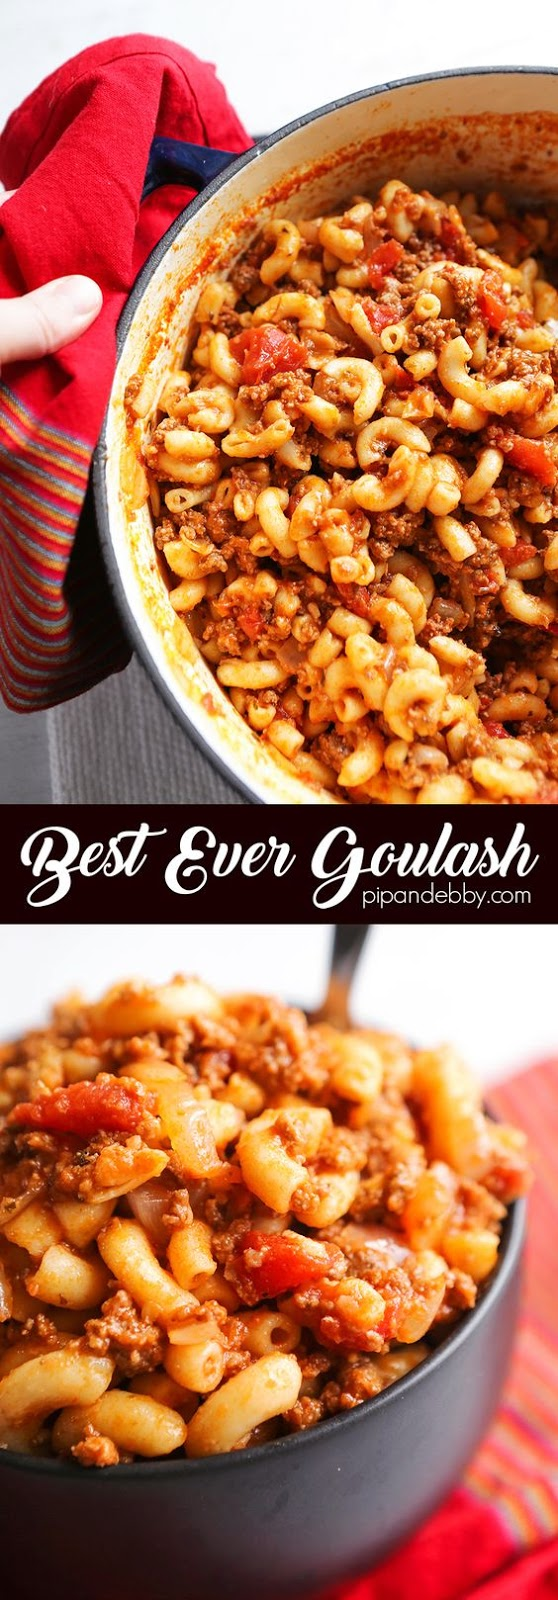 BEST EVER AMERICAN GOULASH RECIPE